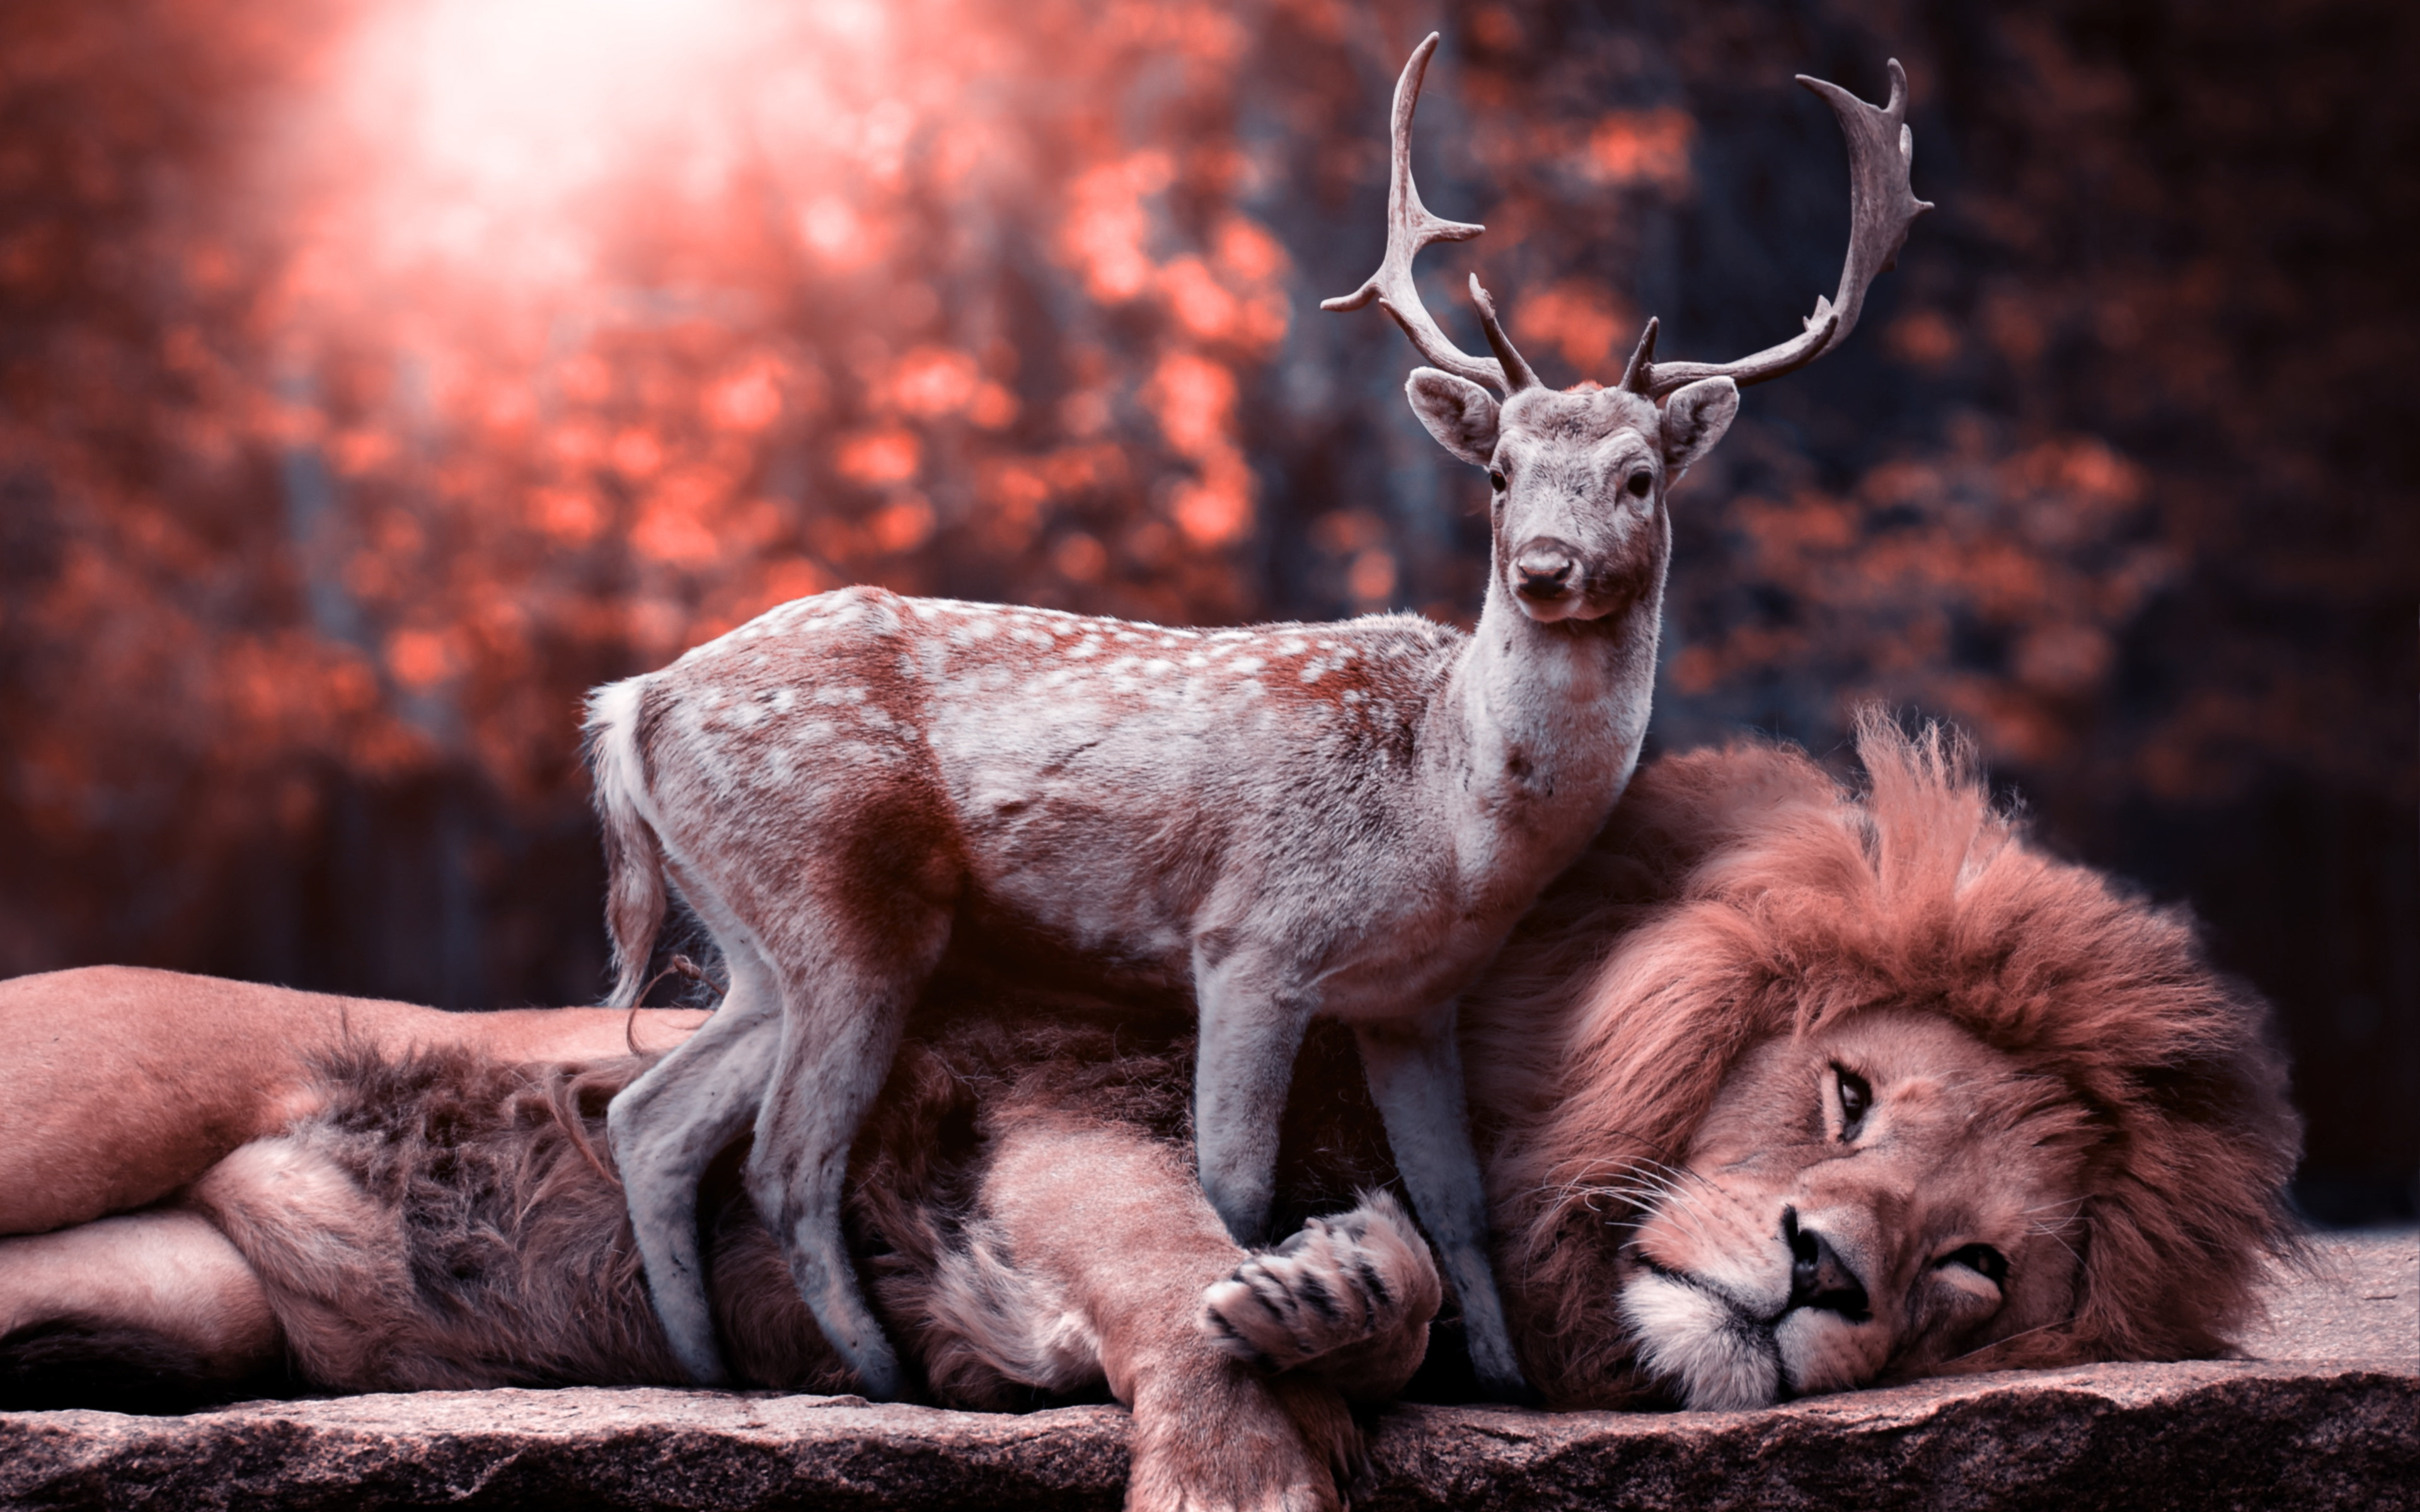 The lion and the deer wallpaper 3840x2400